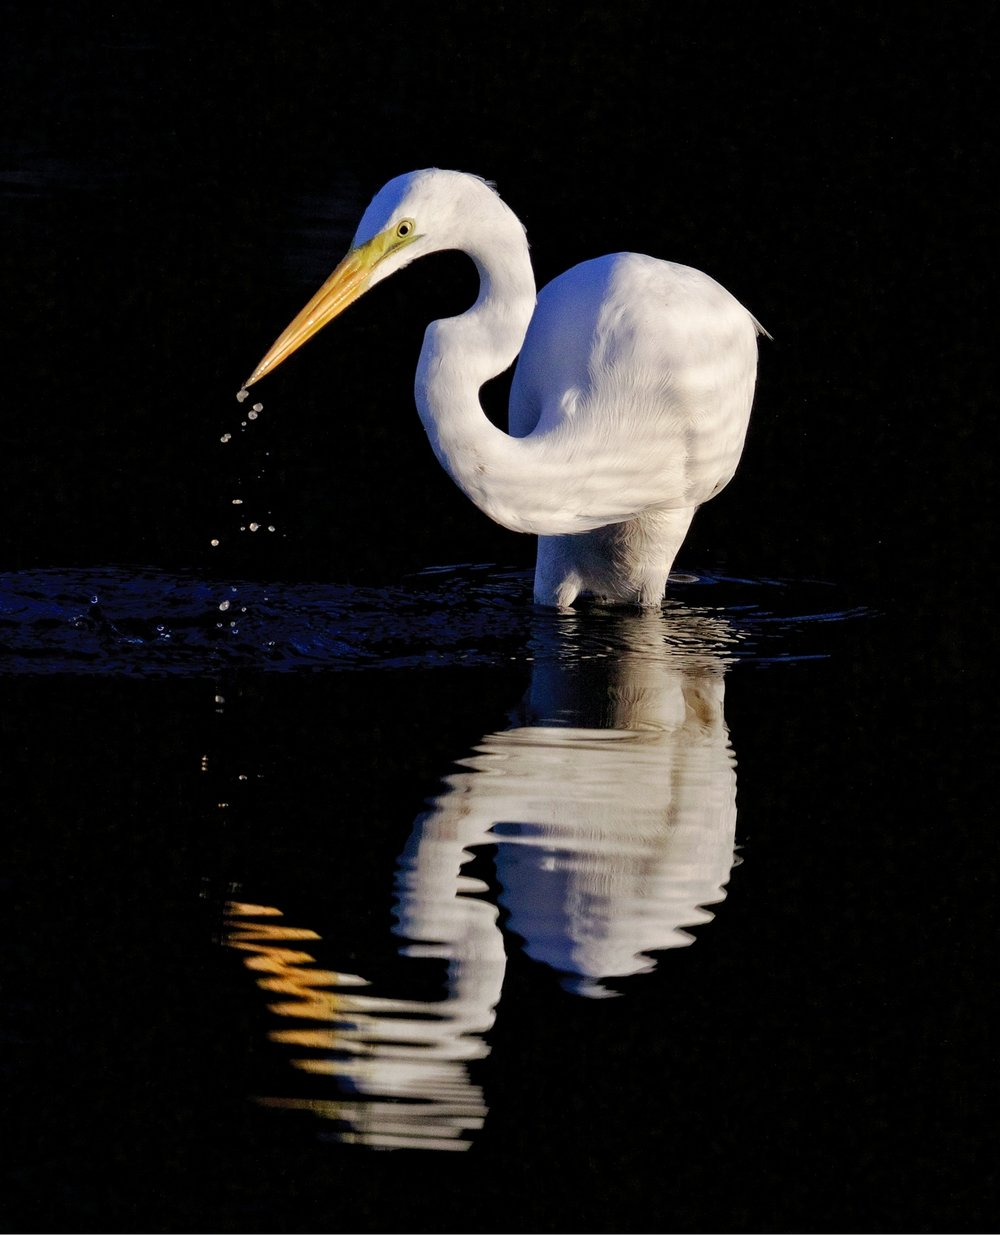 The Great Egret begins to hunt for minnows in the rising tide and early light.